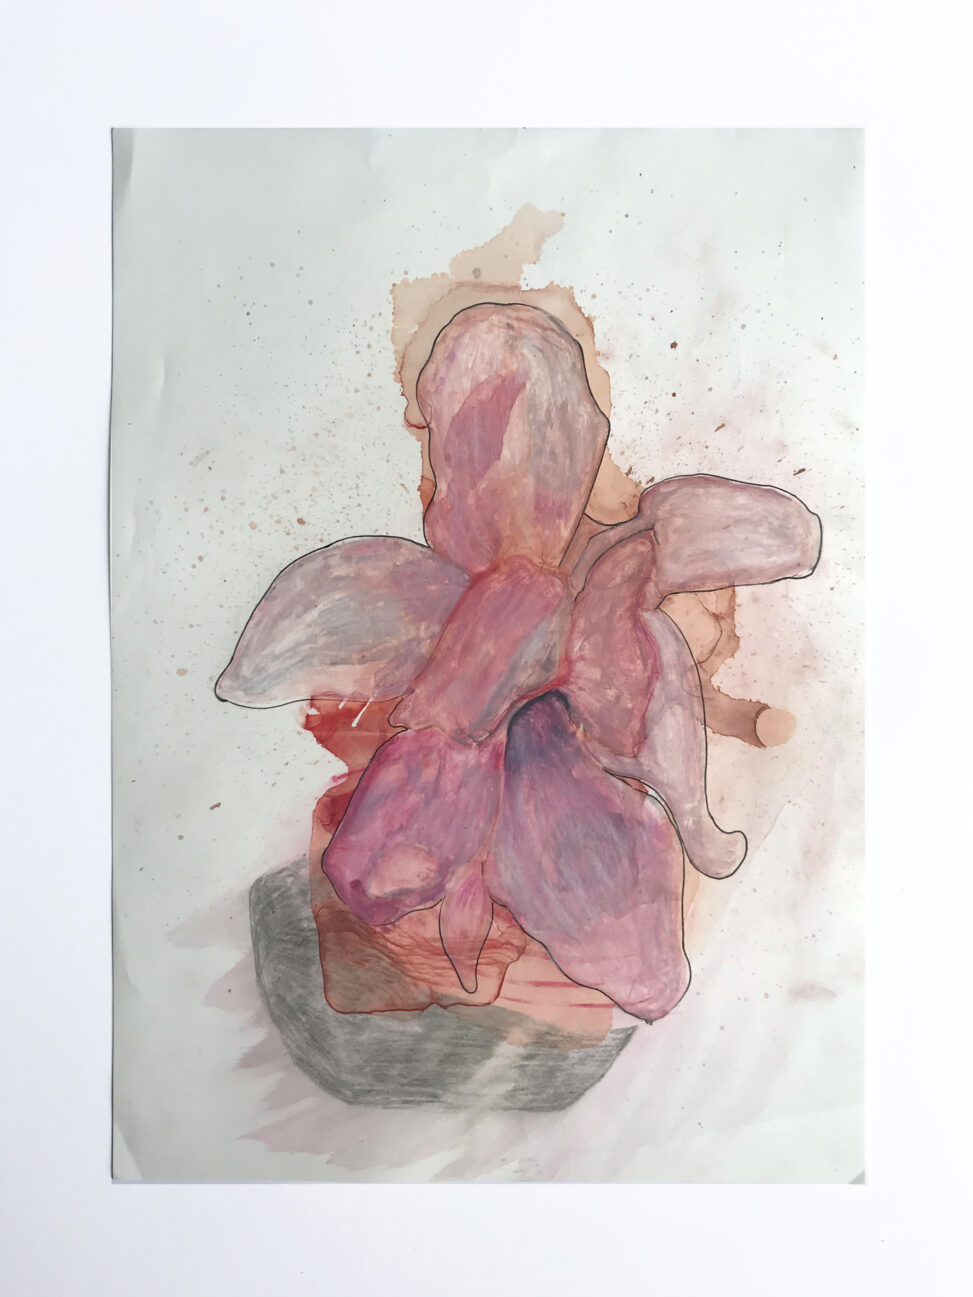 Drawing of a magnolia flower.